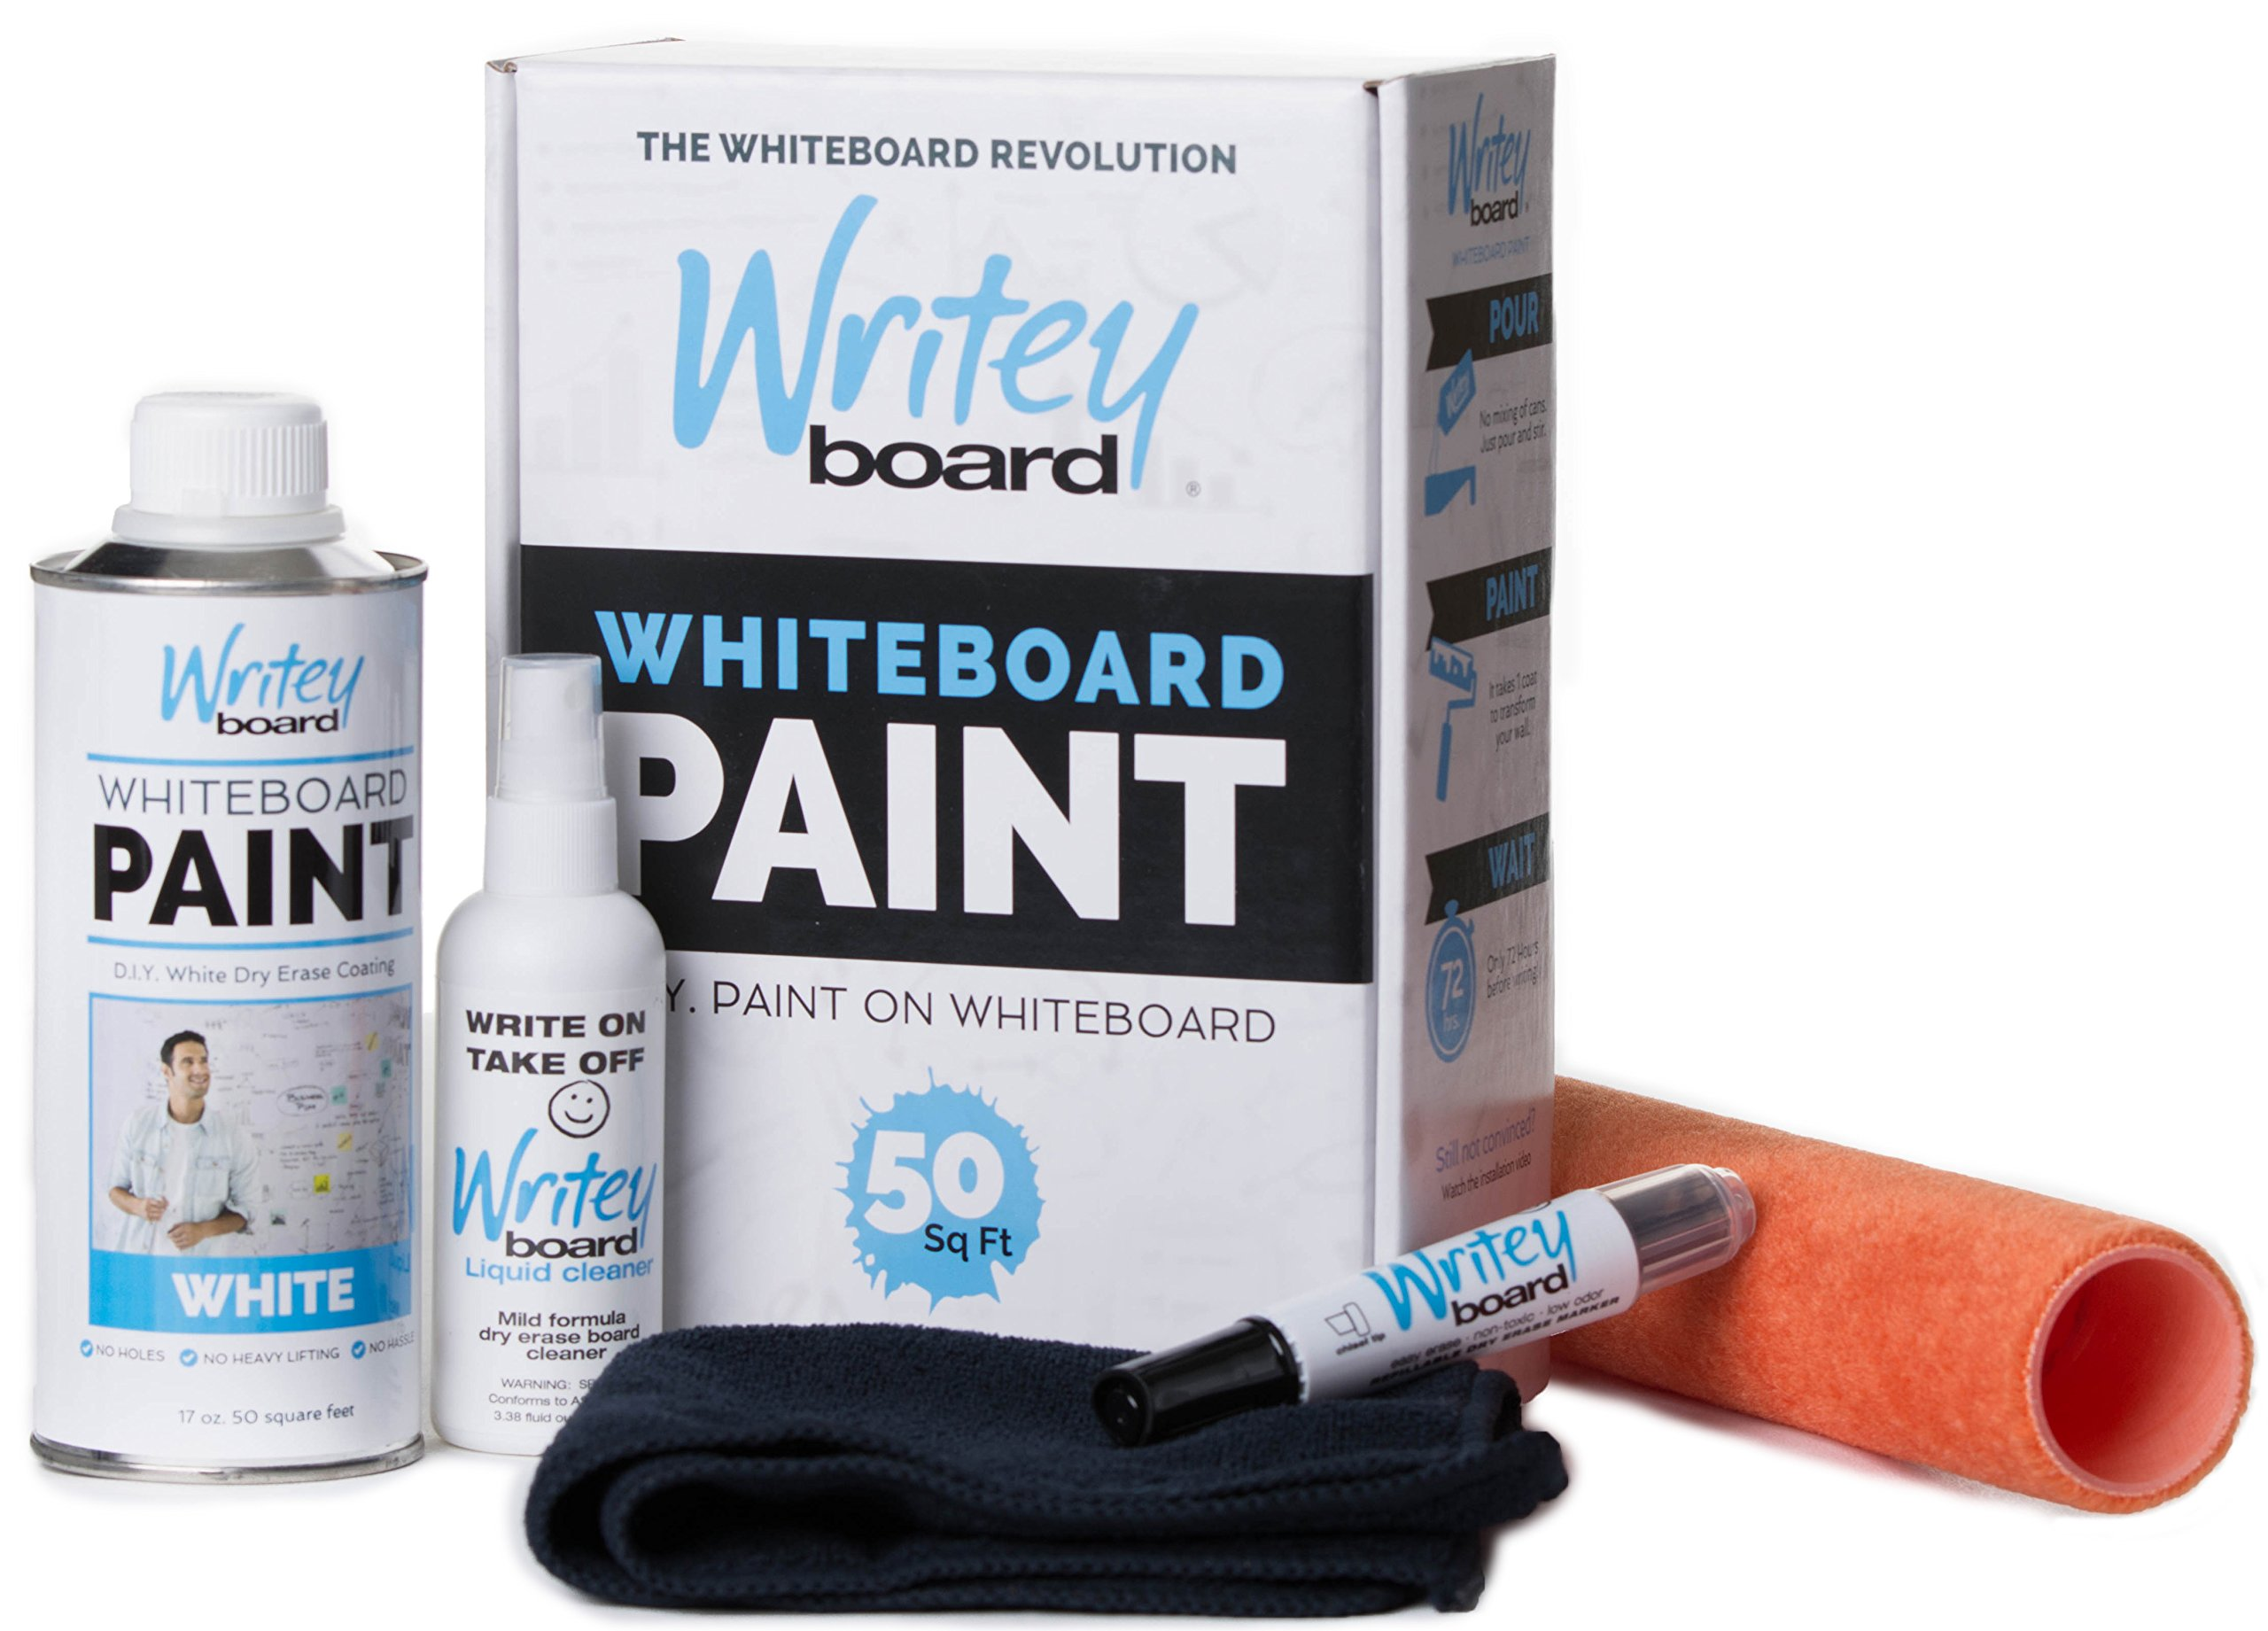 Writeyboard Premium 5 Piece Whiteboard Paint Kit, White Paint, with 9 Inch Roller, Covers 50 Square Feet